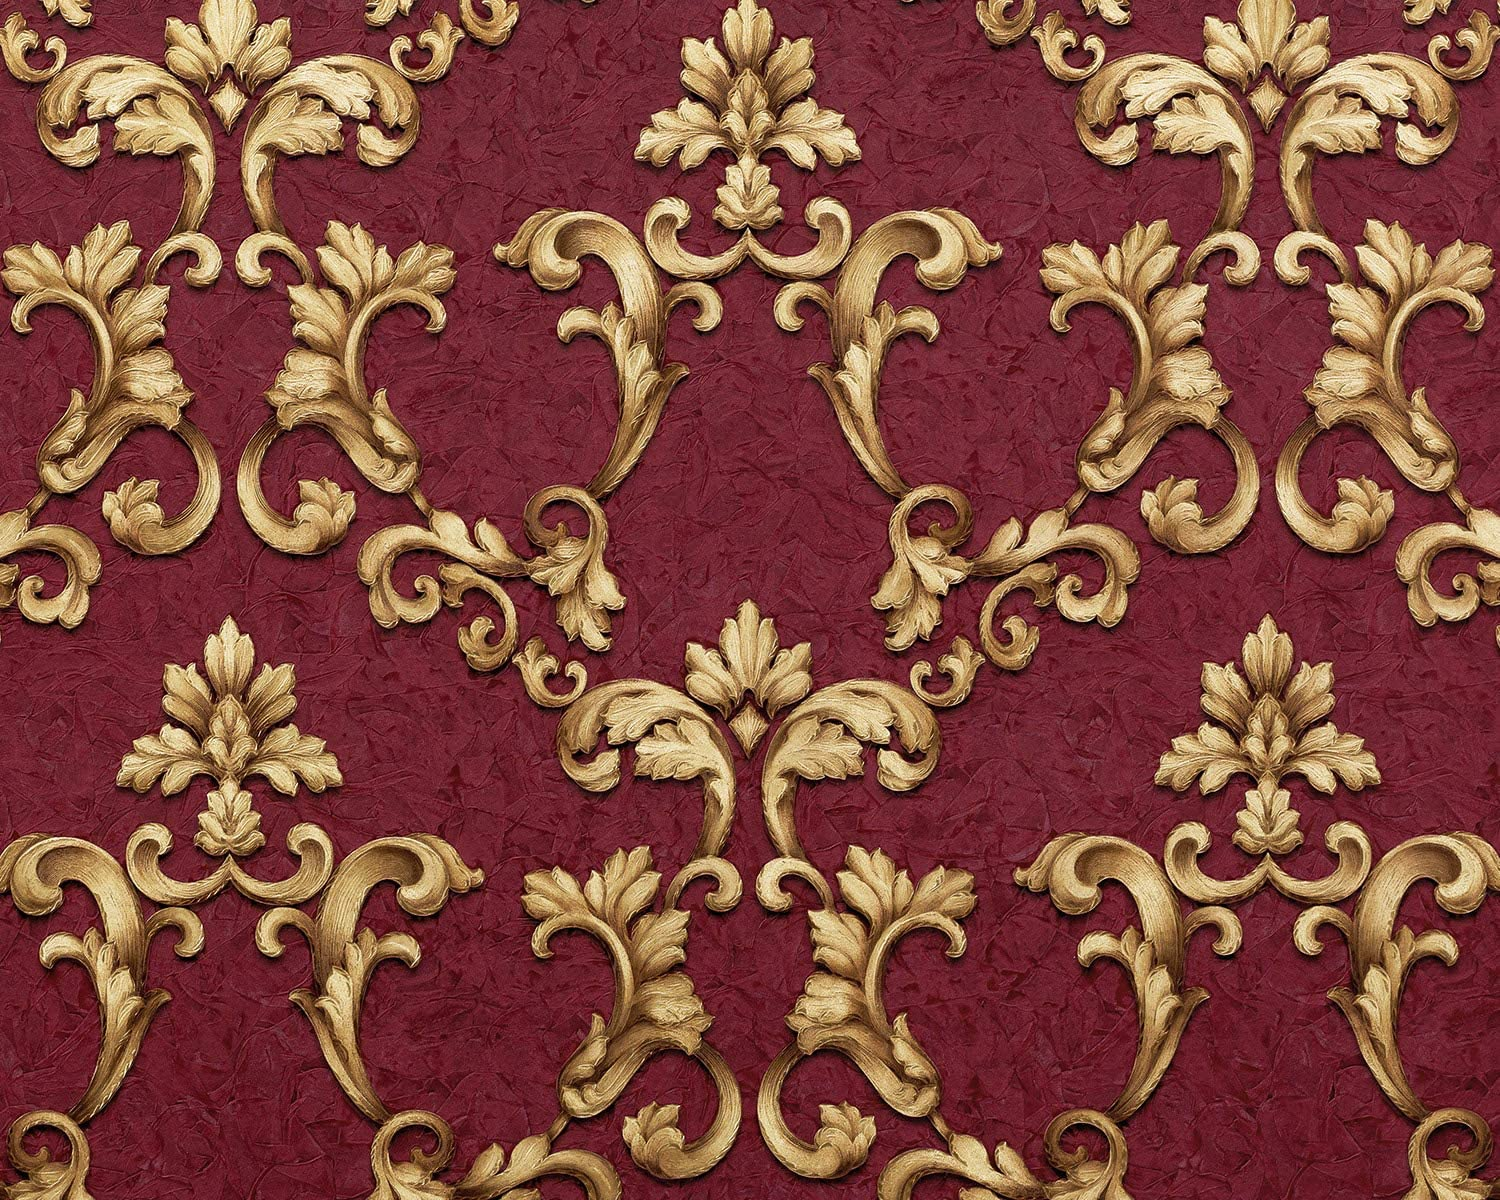 Baroque wallcovering Wall EDEM 9085-25 hot Embossed Non-Woven Wallpaper Embossed with Floral 3D Ornaments Shimmering red Claret Violet Gold 10.65 m2 (114 ft2)